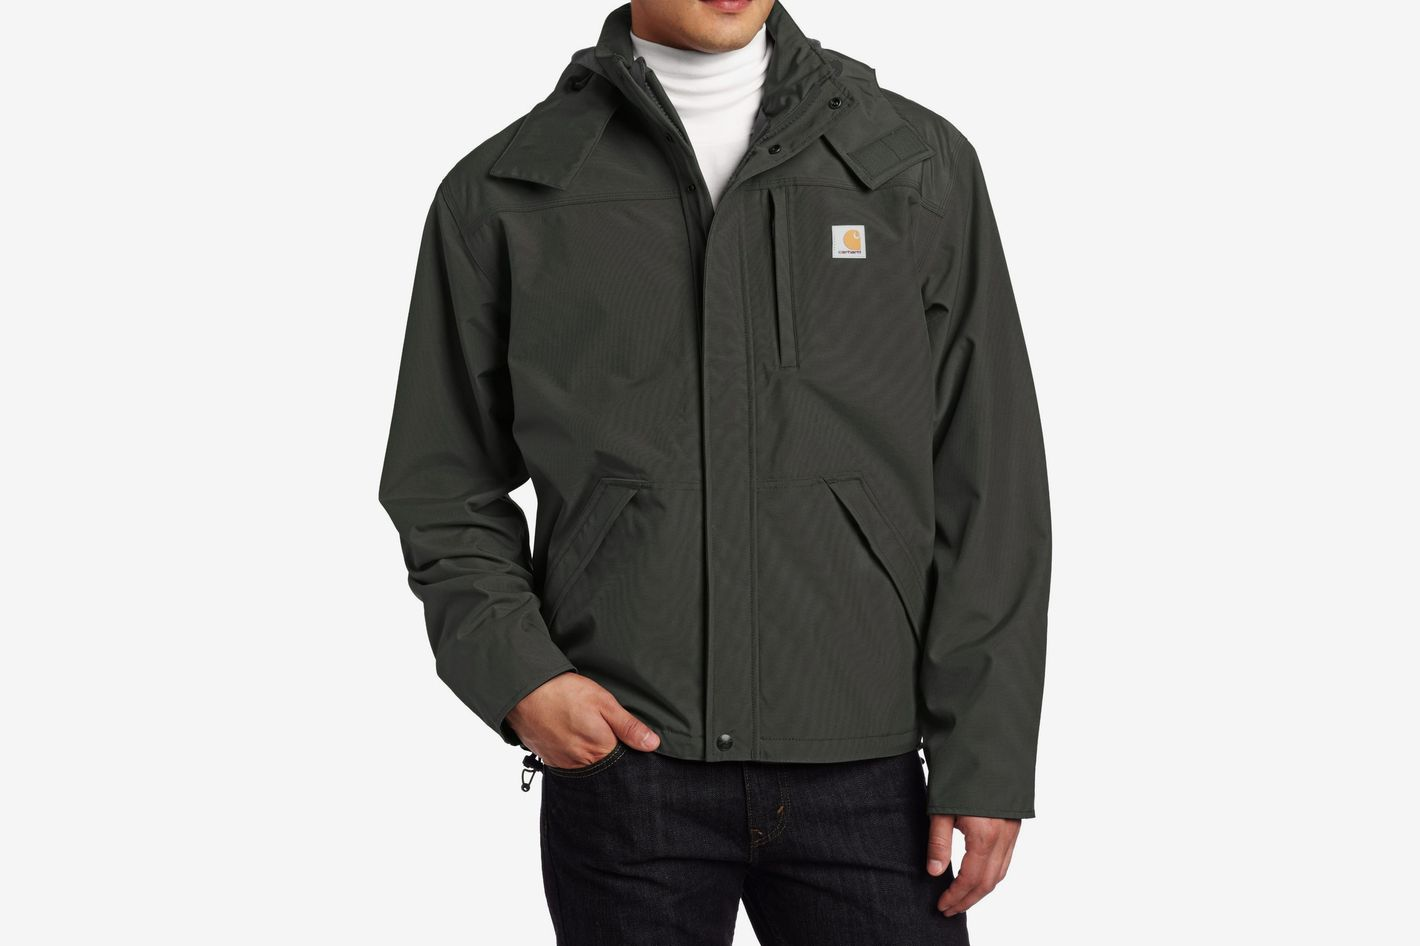 d8e3a5e43e6c3 12 Best Rain Jackets and Rain Coats for Men 2019